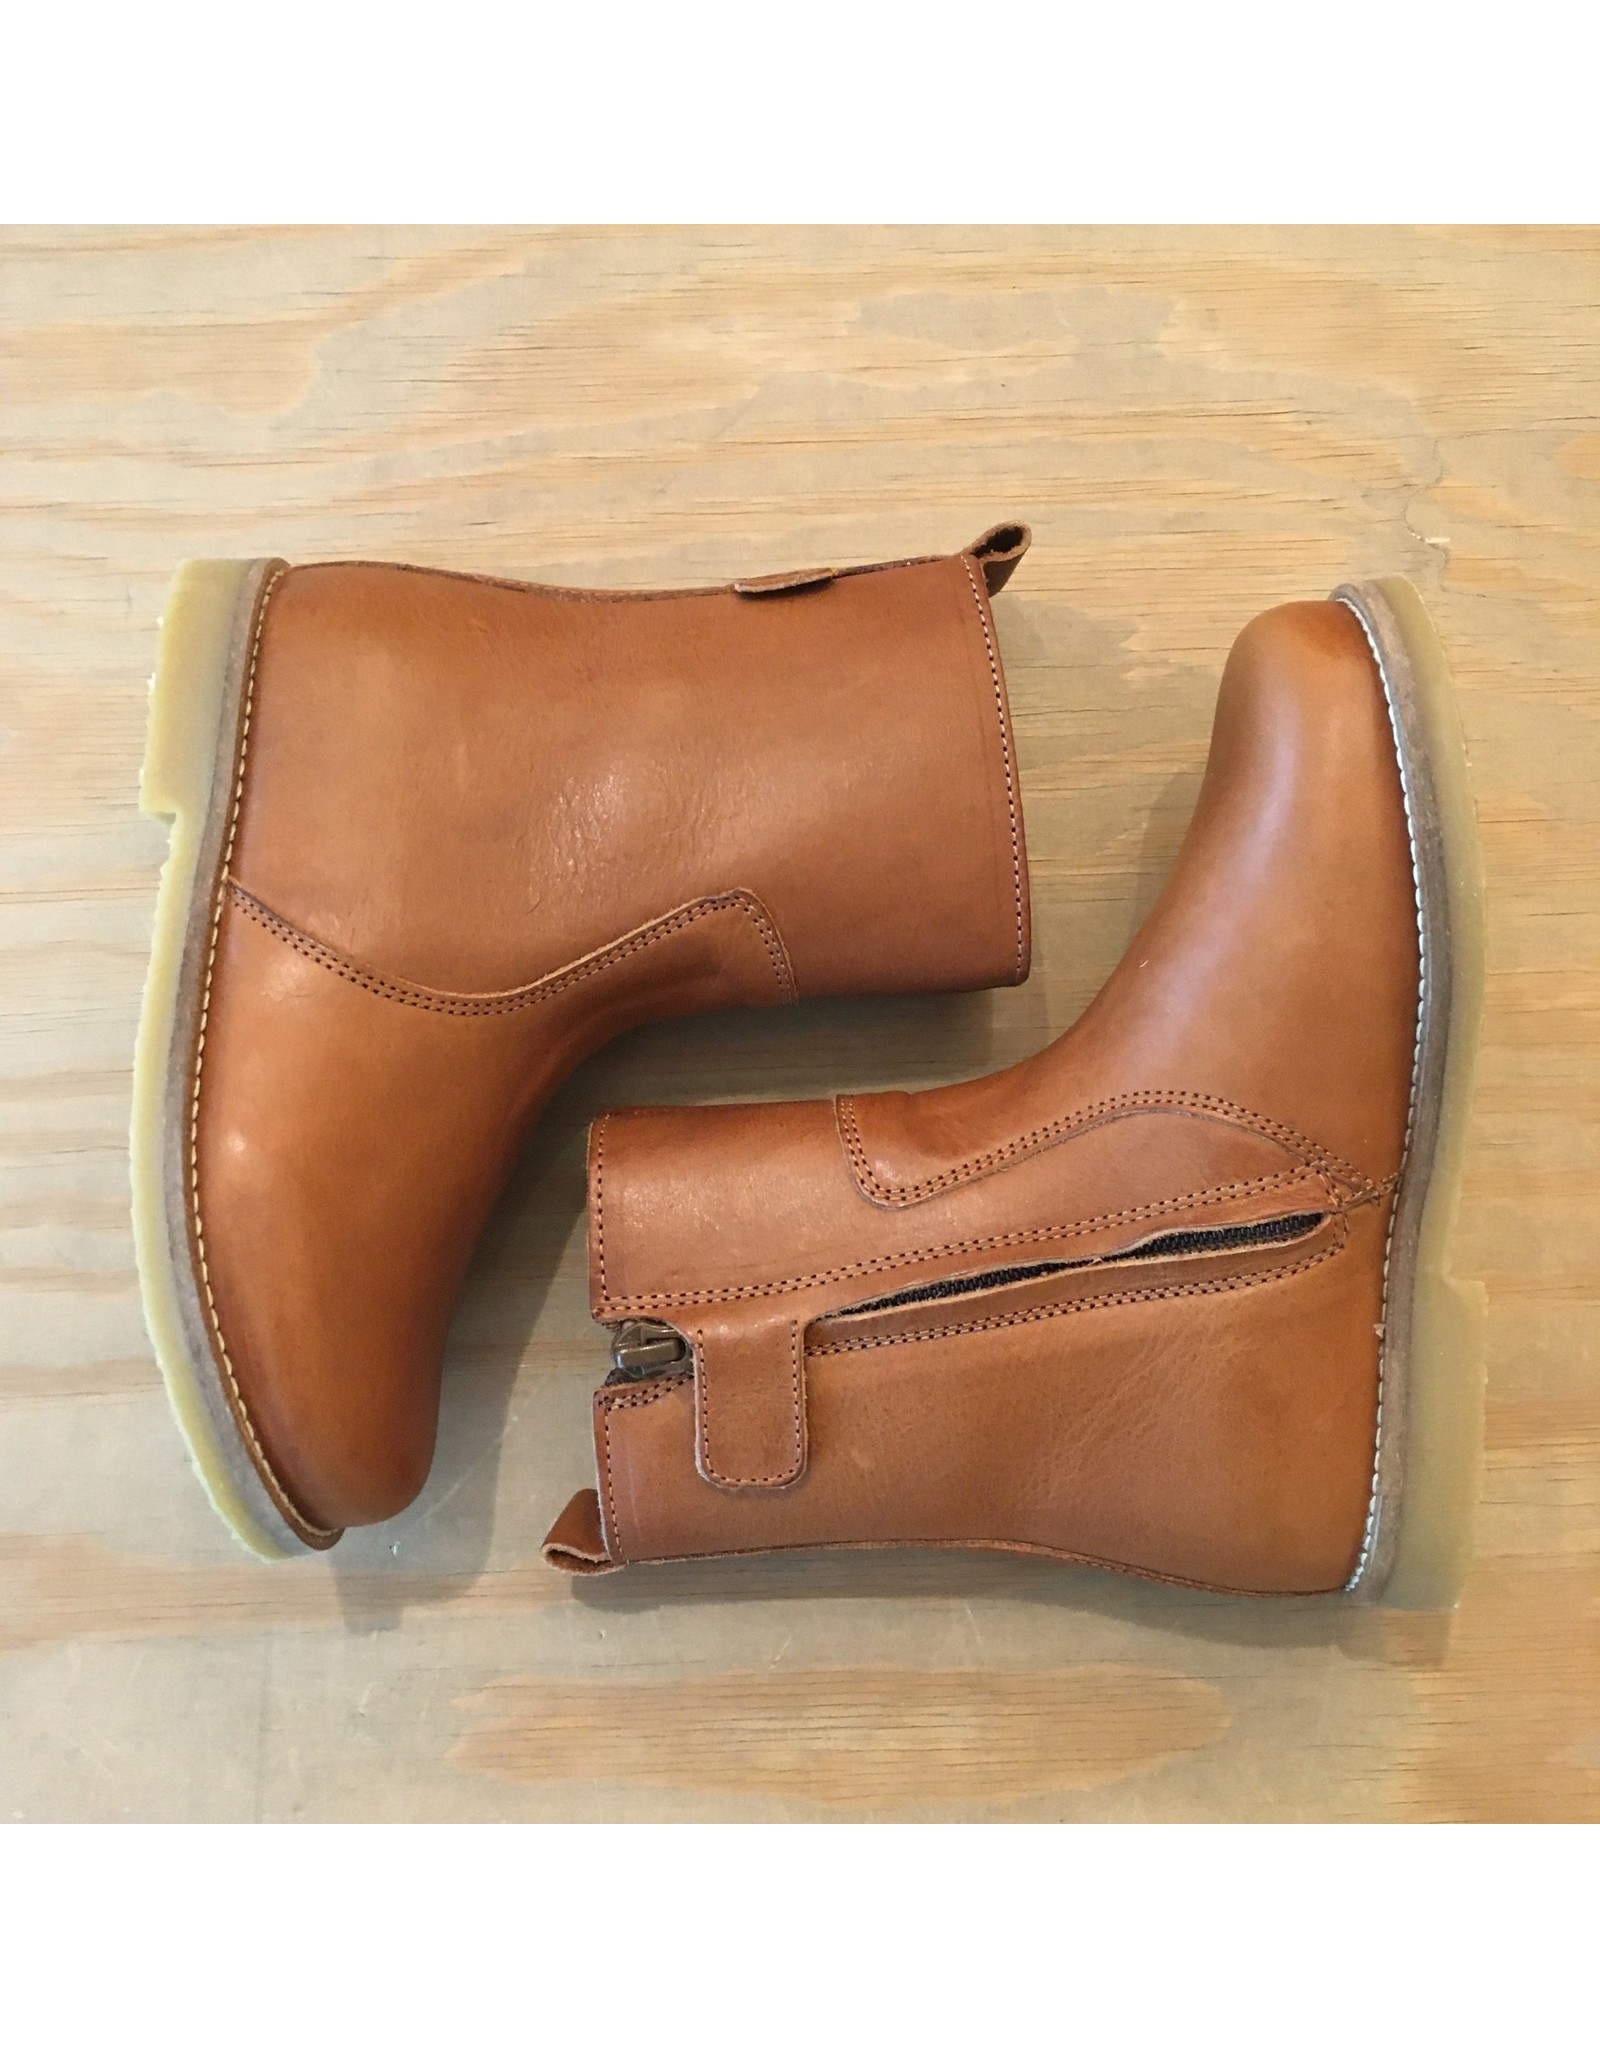 PETIT NORD PETIT NORD EVERY DAY WINTER BOOT COGNAC